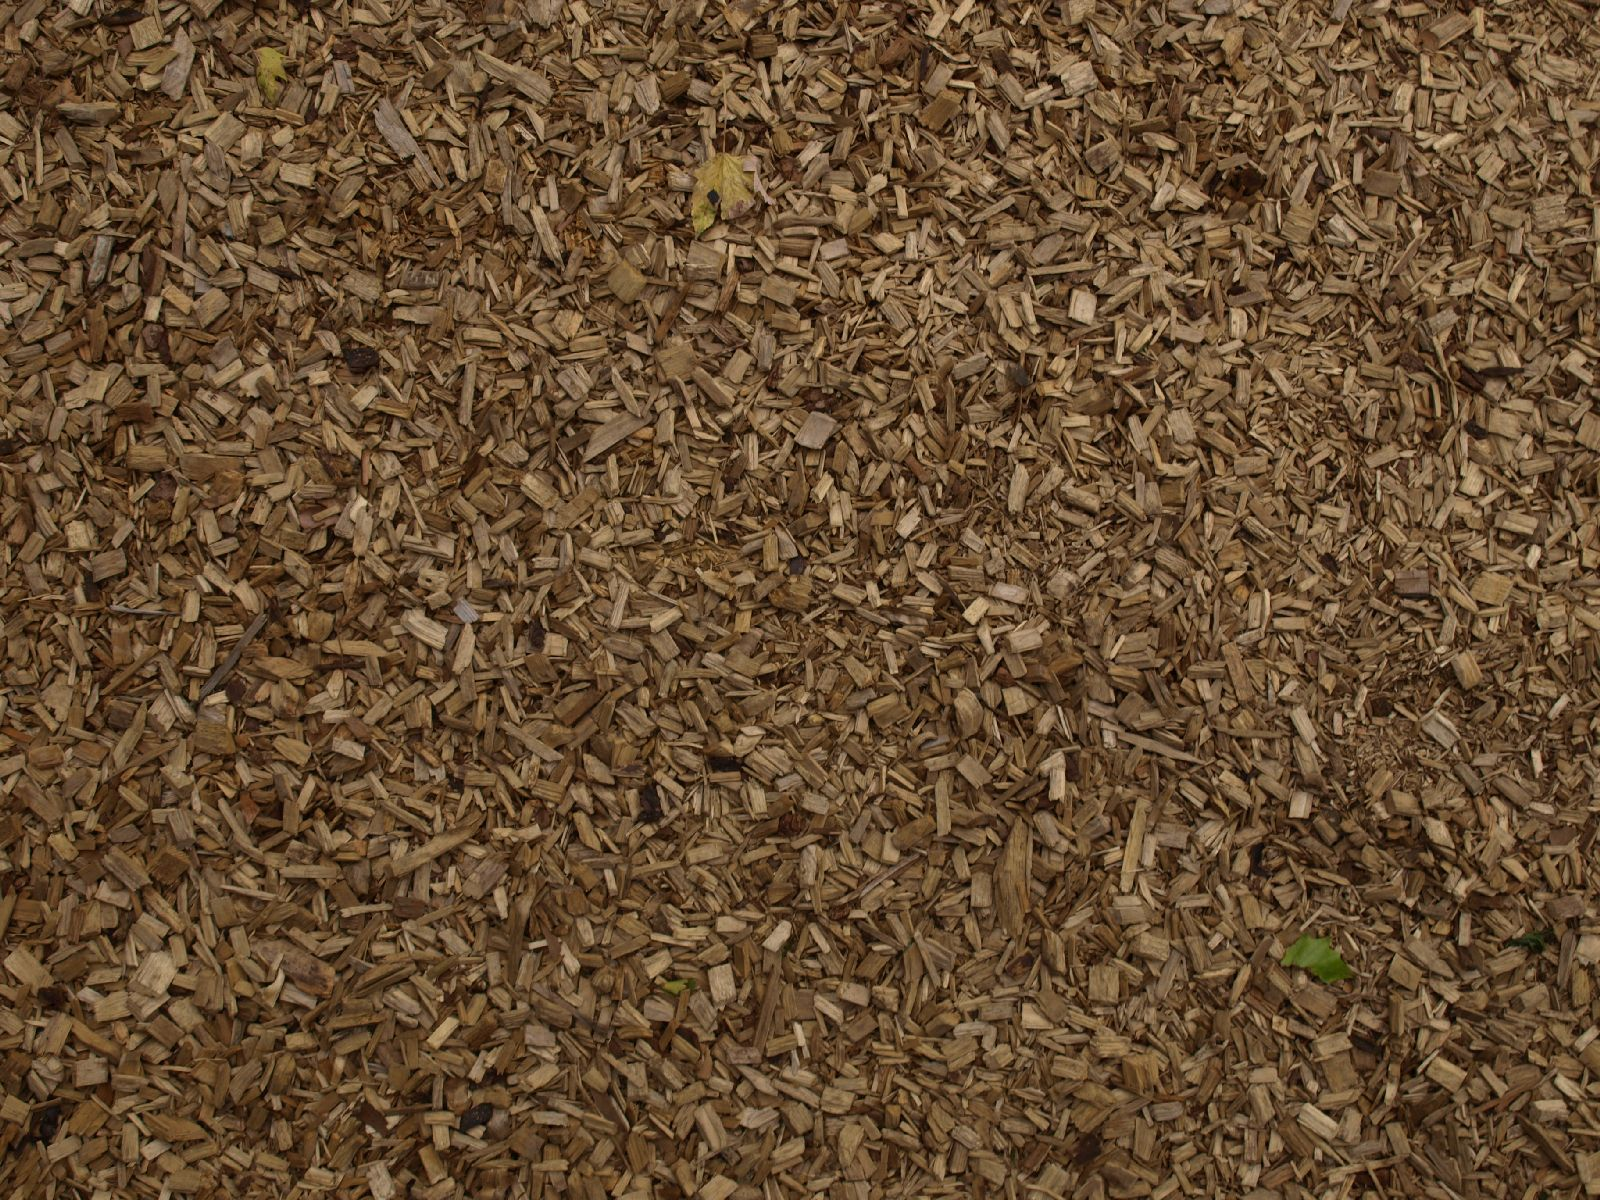 Ground-Nature_Texture_A_PA039924